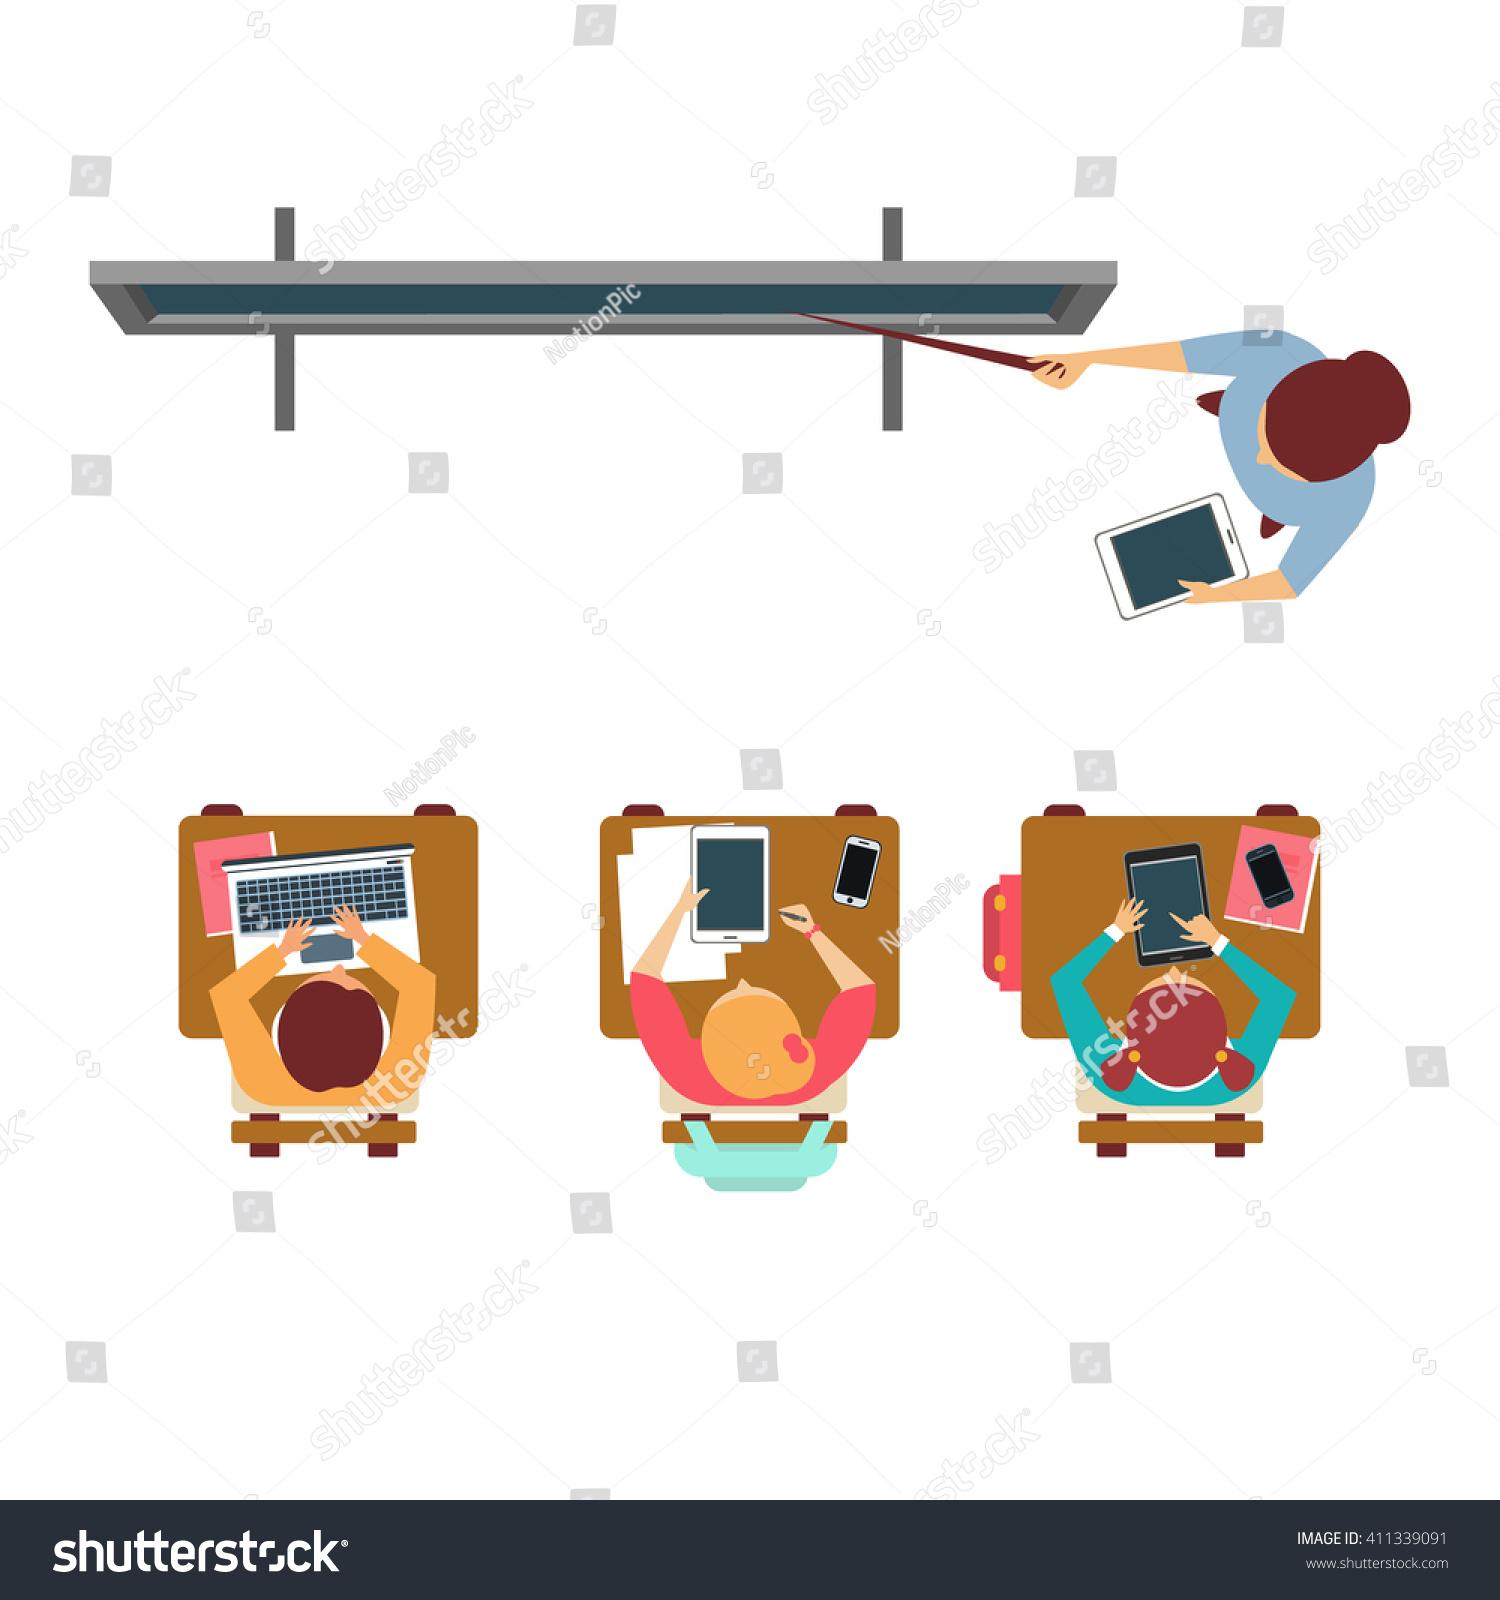 Modern equipped class from above flat primitive style design vector illustration on white background